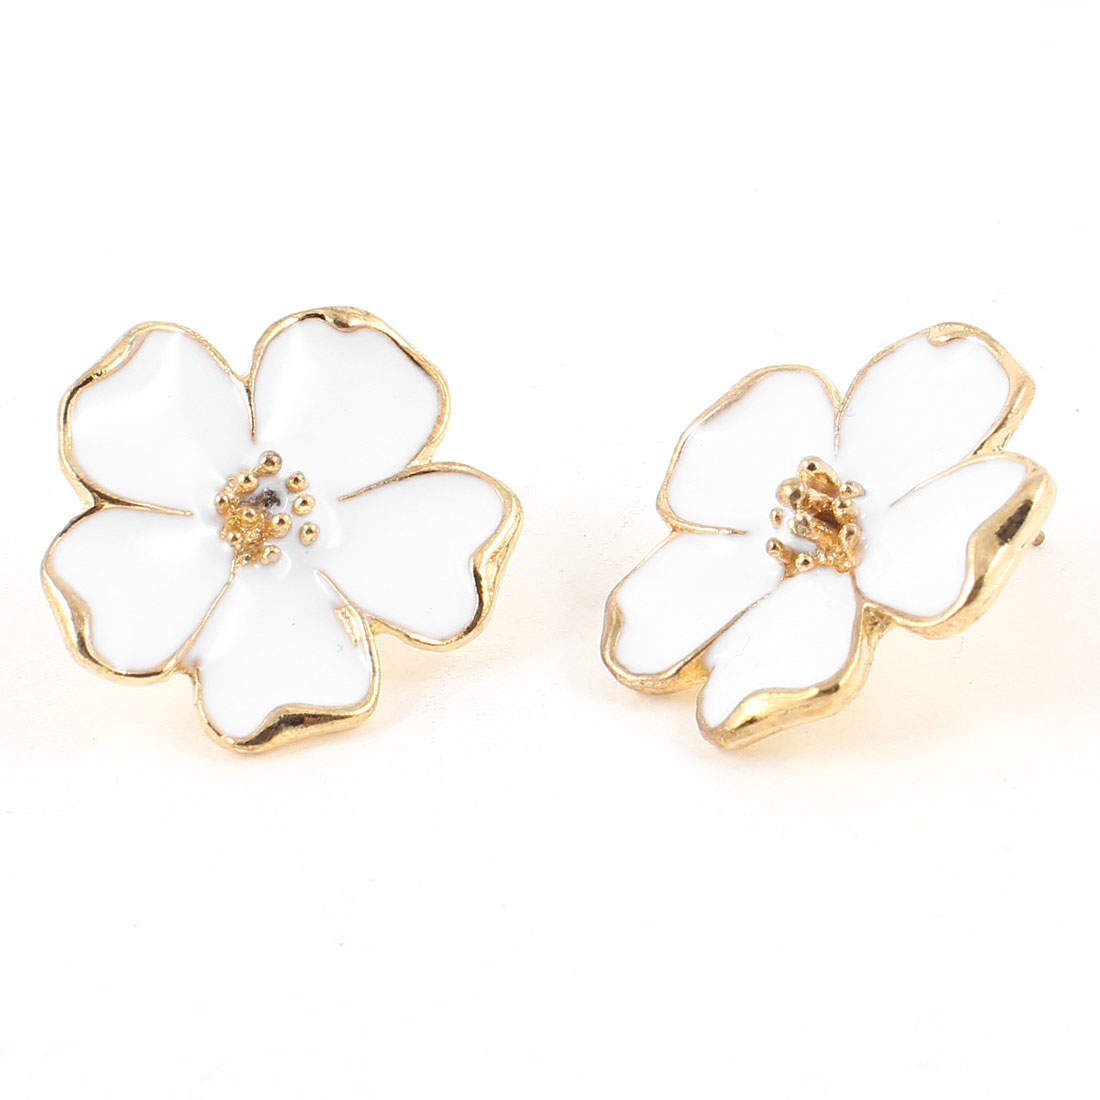 Ladies White Gold Tone Flower Pierced Ear Stud Earrings Eardrops Pair